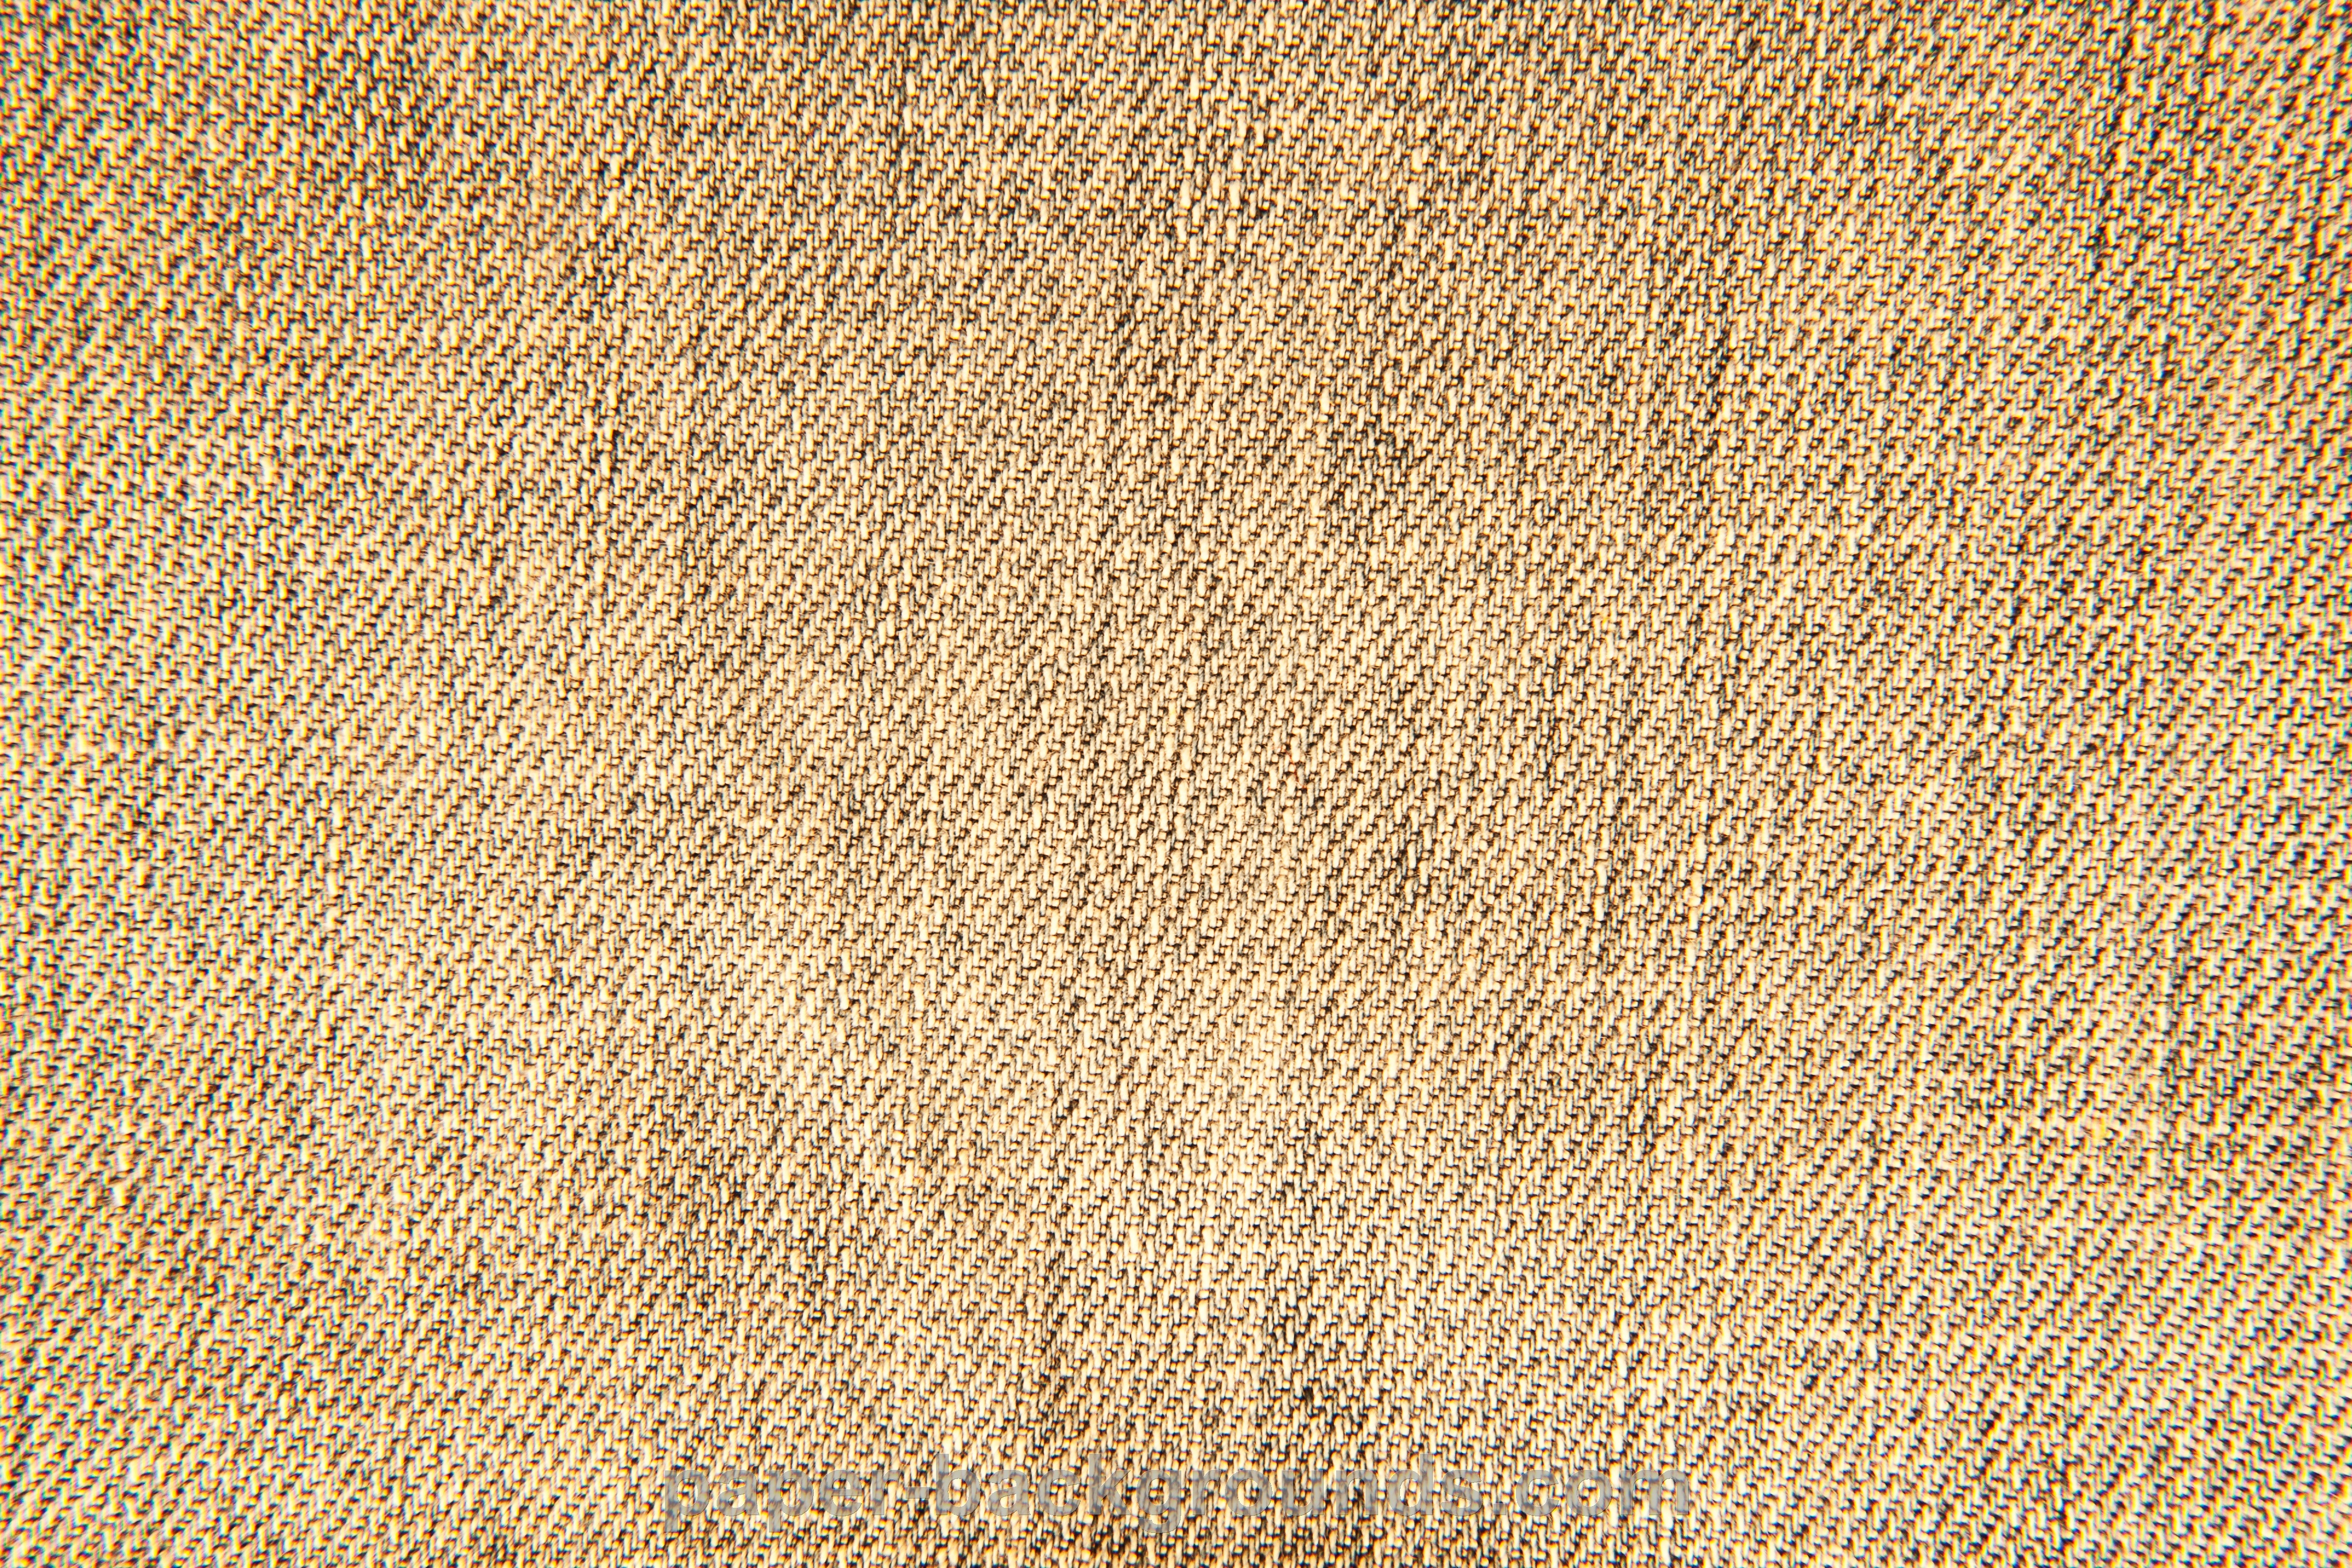 Paper Backgrounds | Brown Fabric Texture Background High Resolution